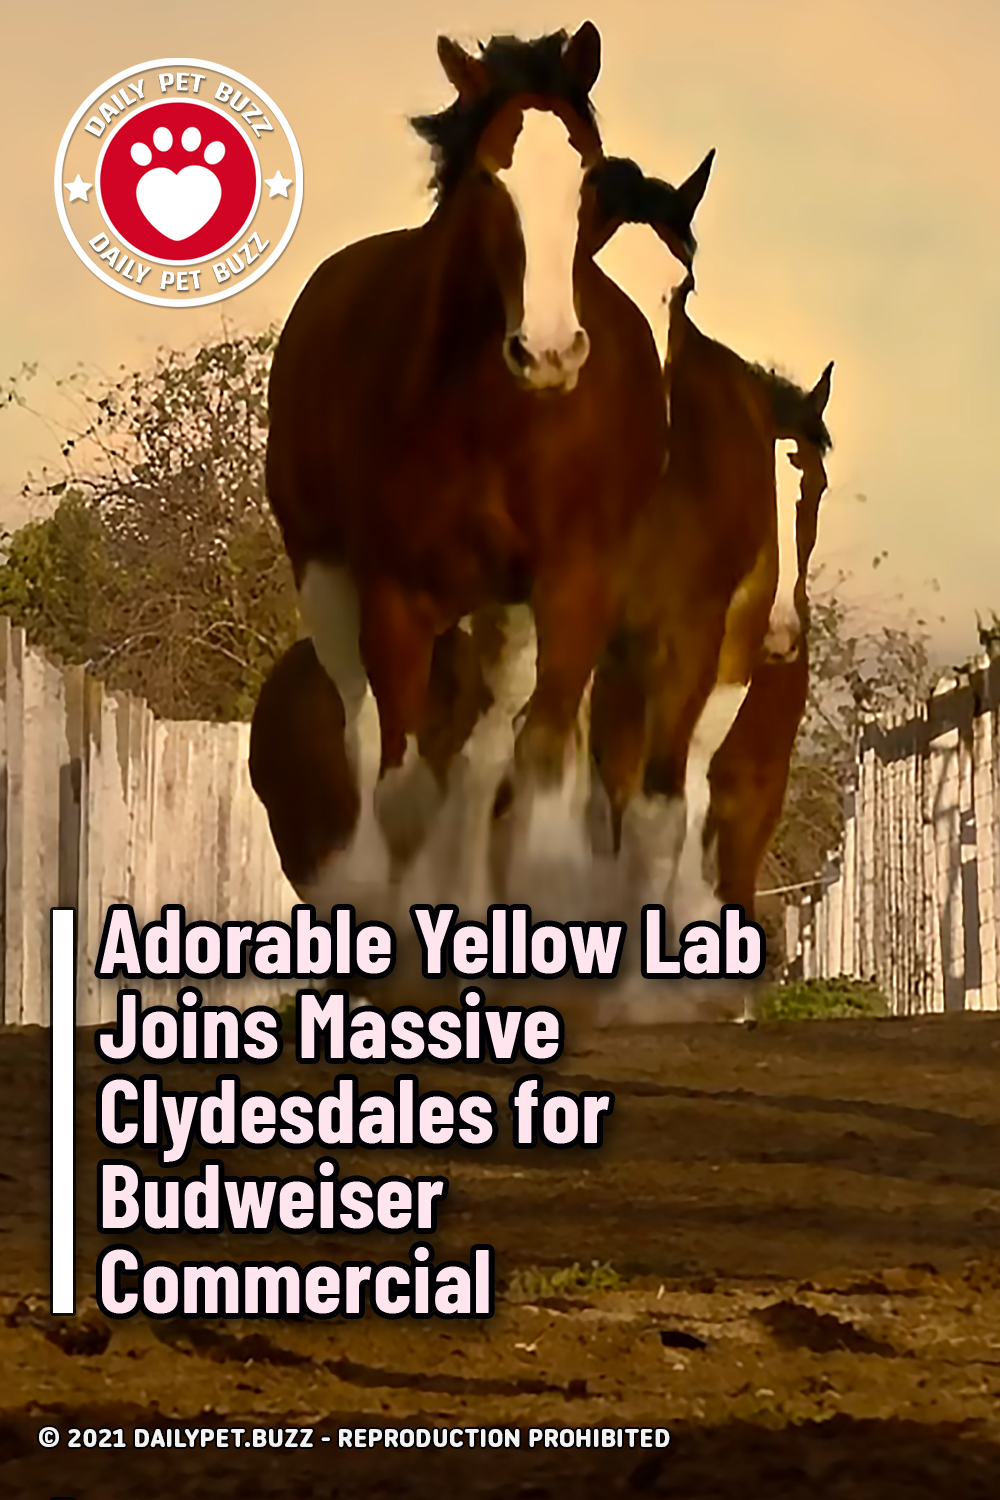 Adorable Yellow Lab Joins Massive Clydesdales for Budweiser Commercial